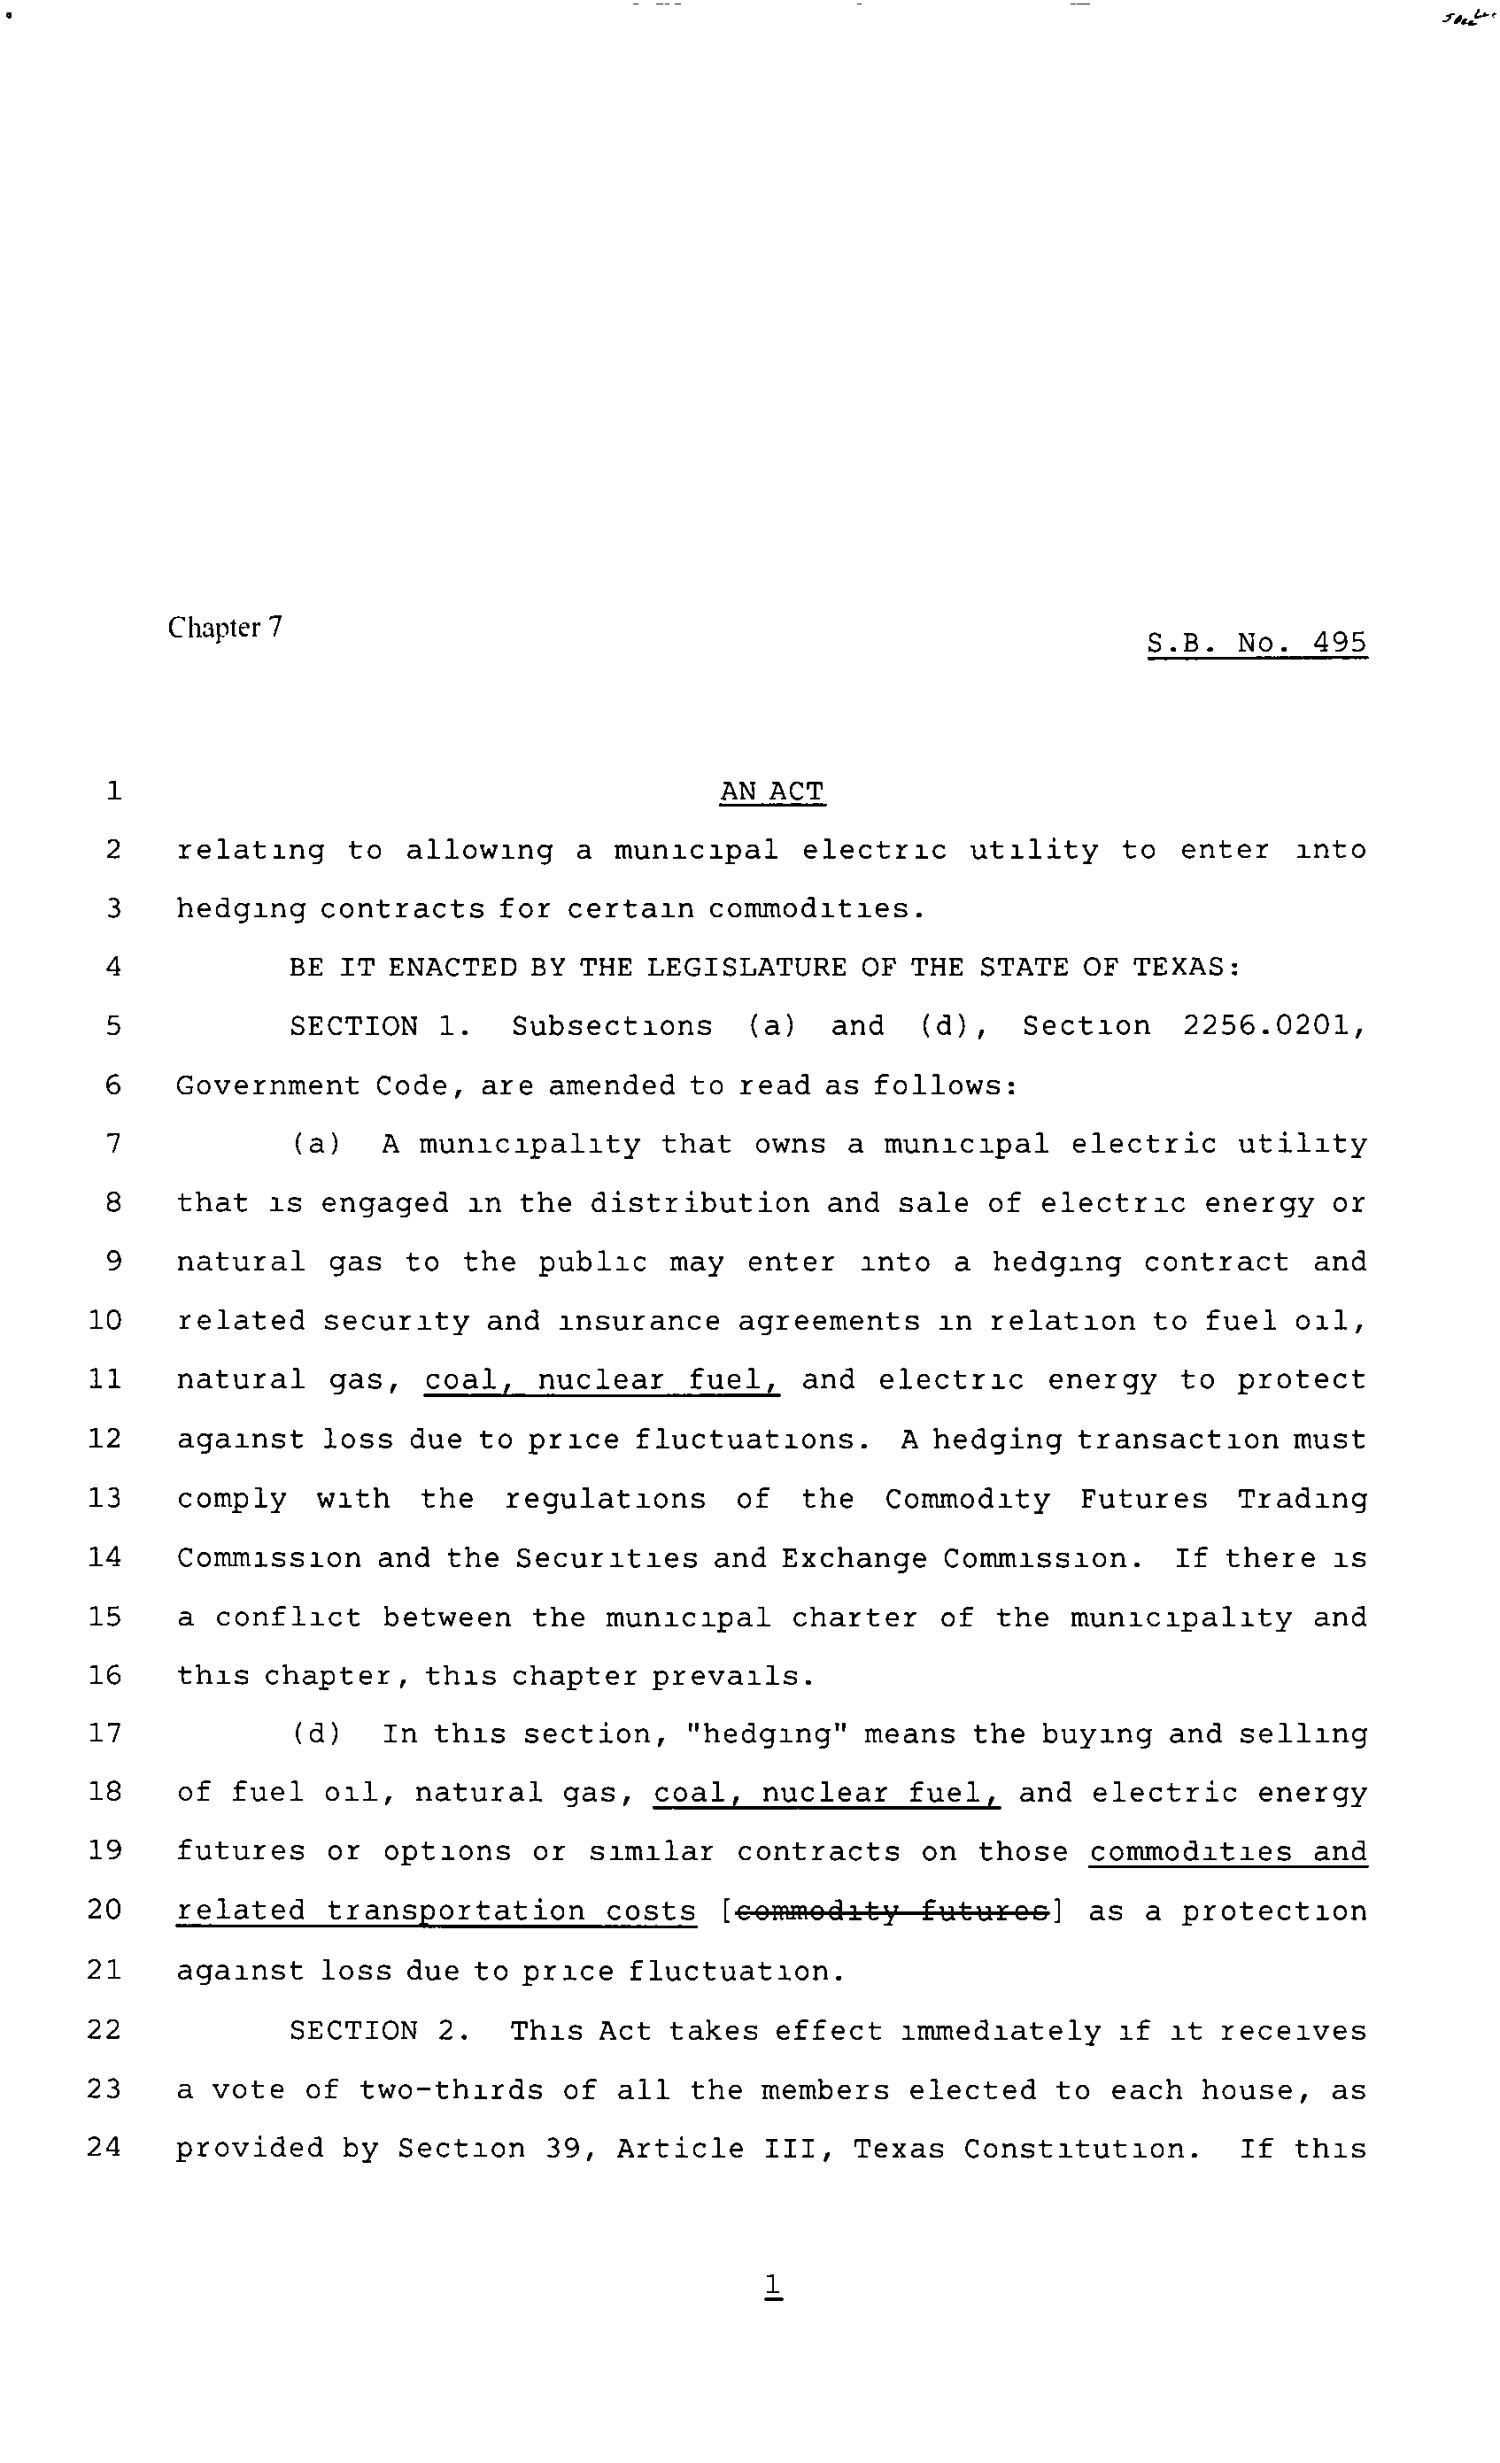 80th Texas Legislature, Regular Session, Senate Bill 495, Chapter 7                                                                                                      [Sequence #]: 1 of 2